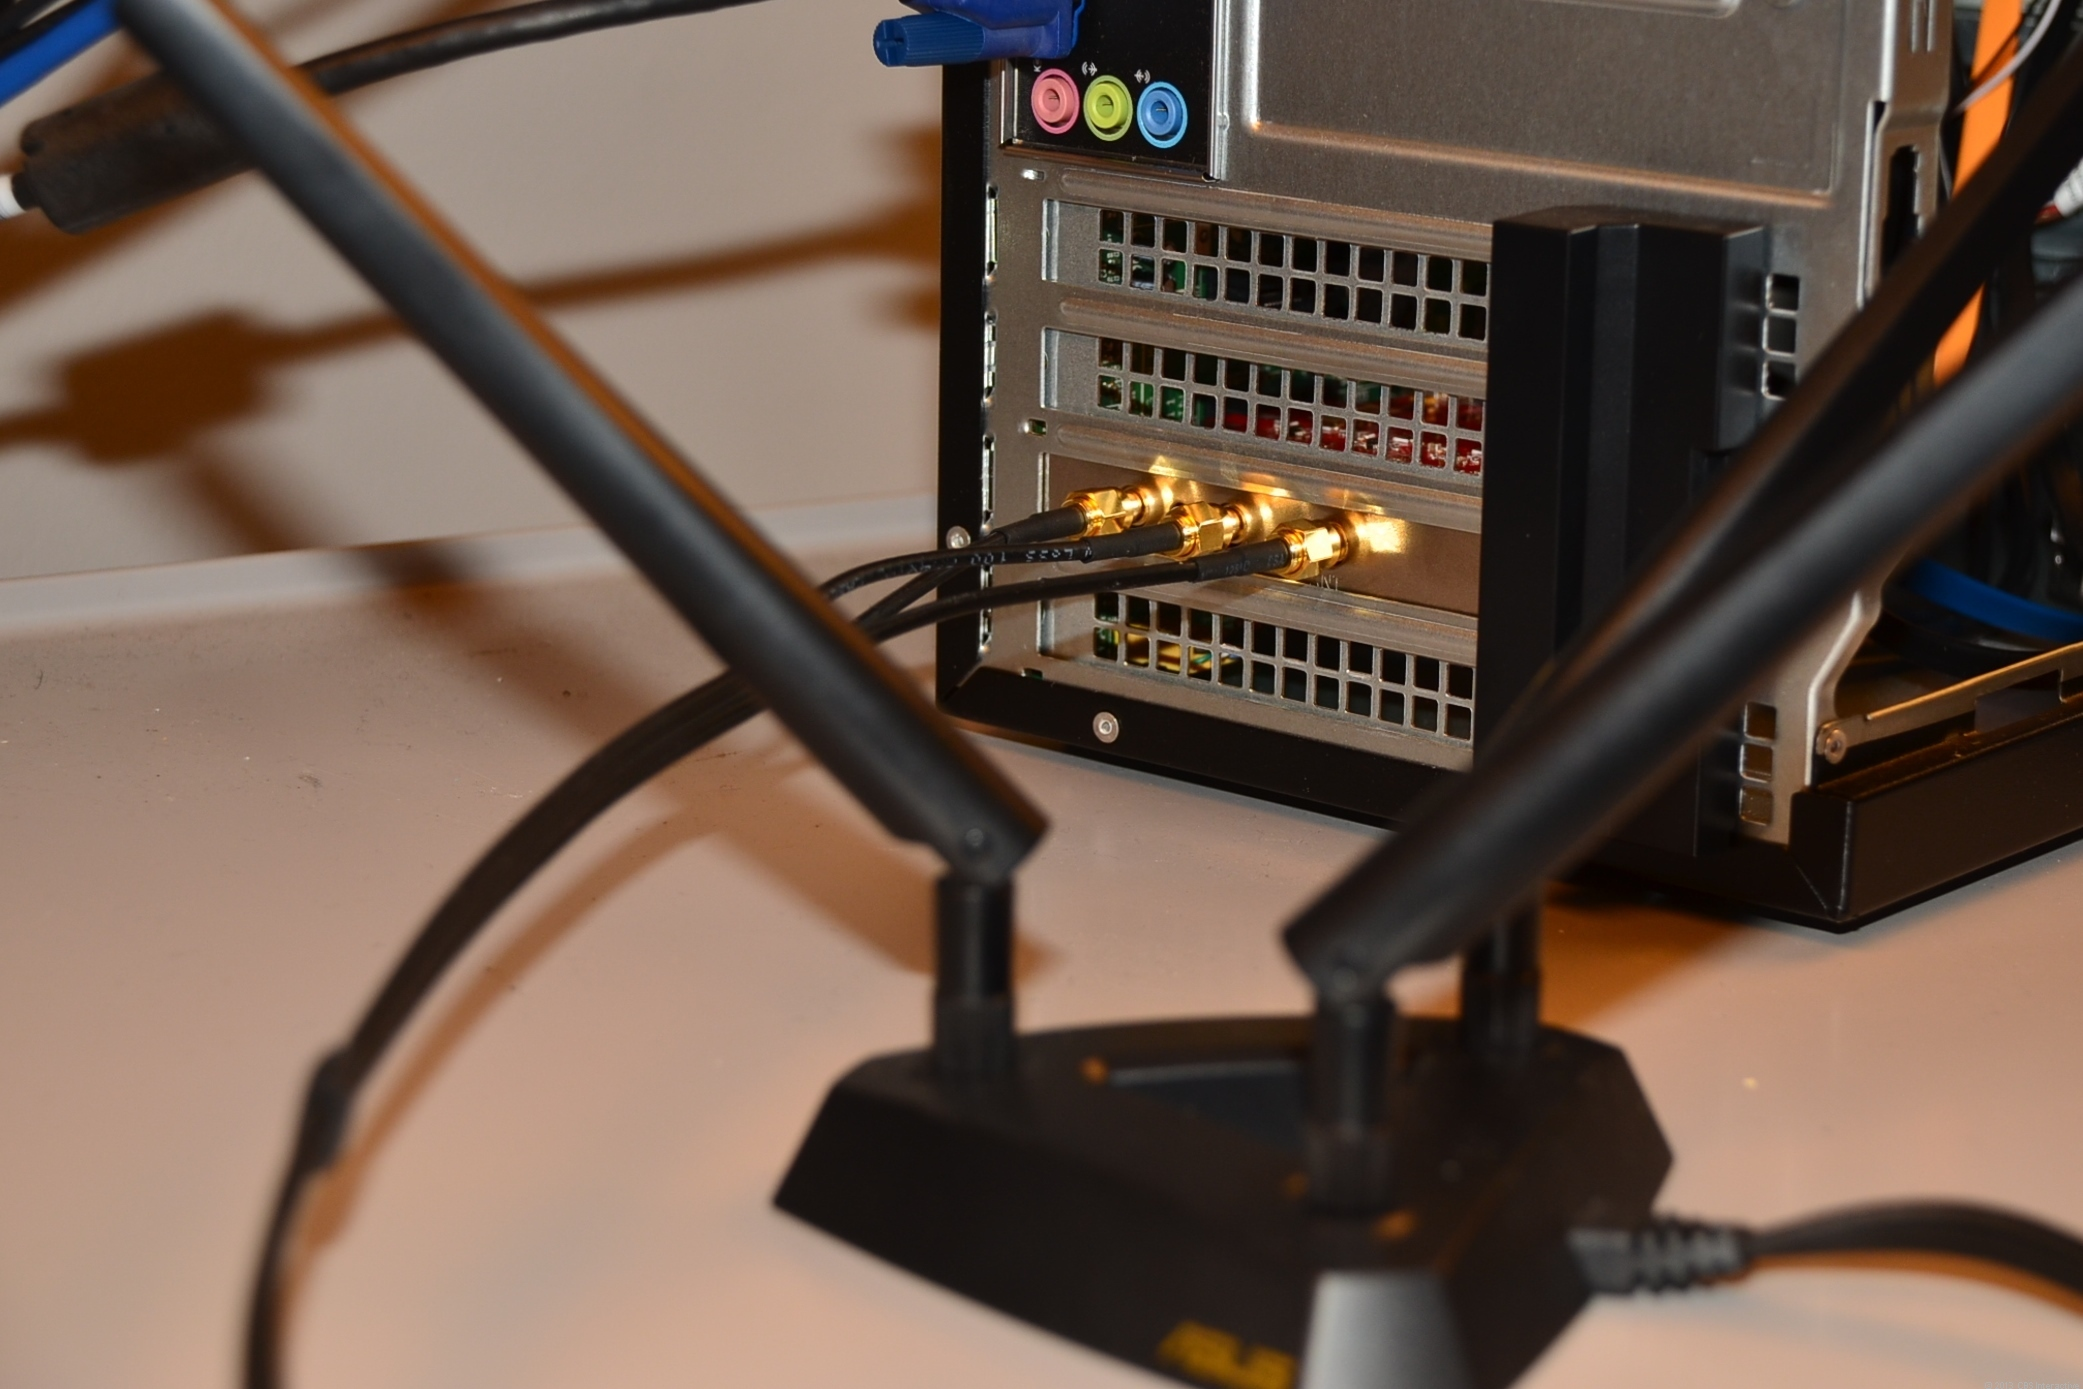 The PCE-AC66 installed on a desktop with its magnetic antenna base.